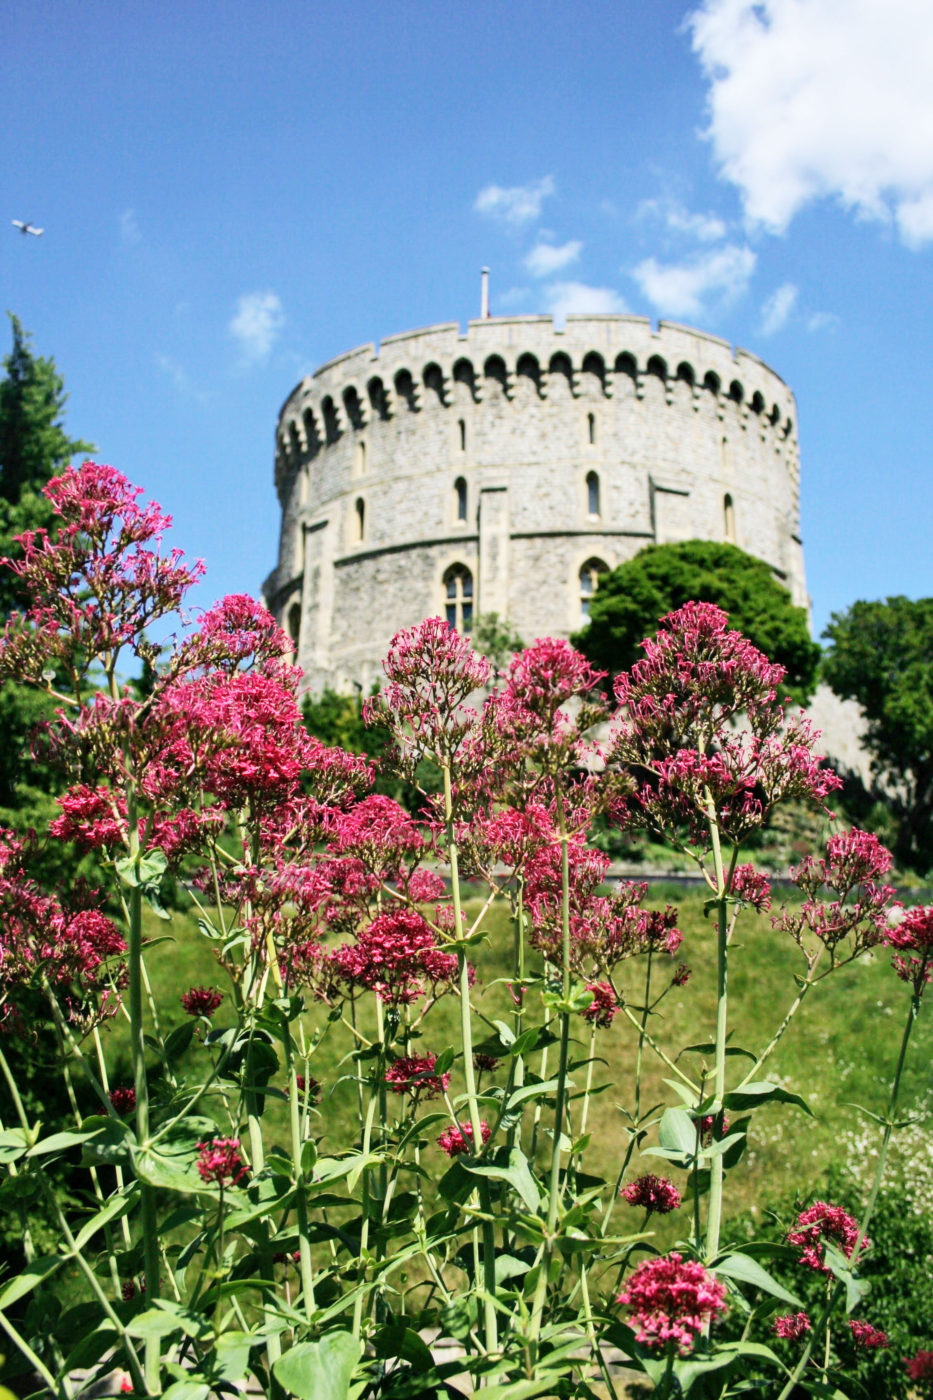 The Round Tower with flowers in bloom